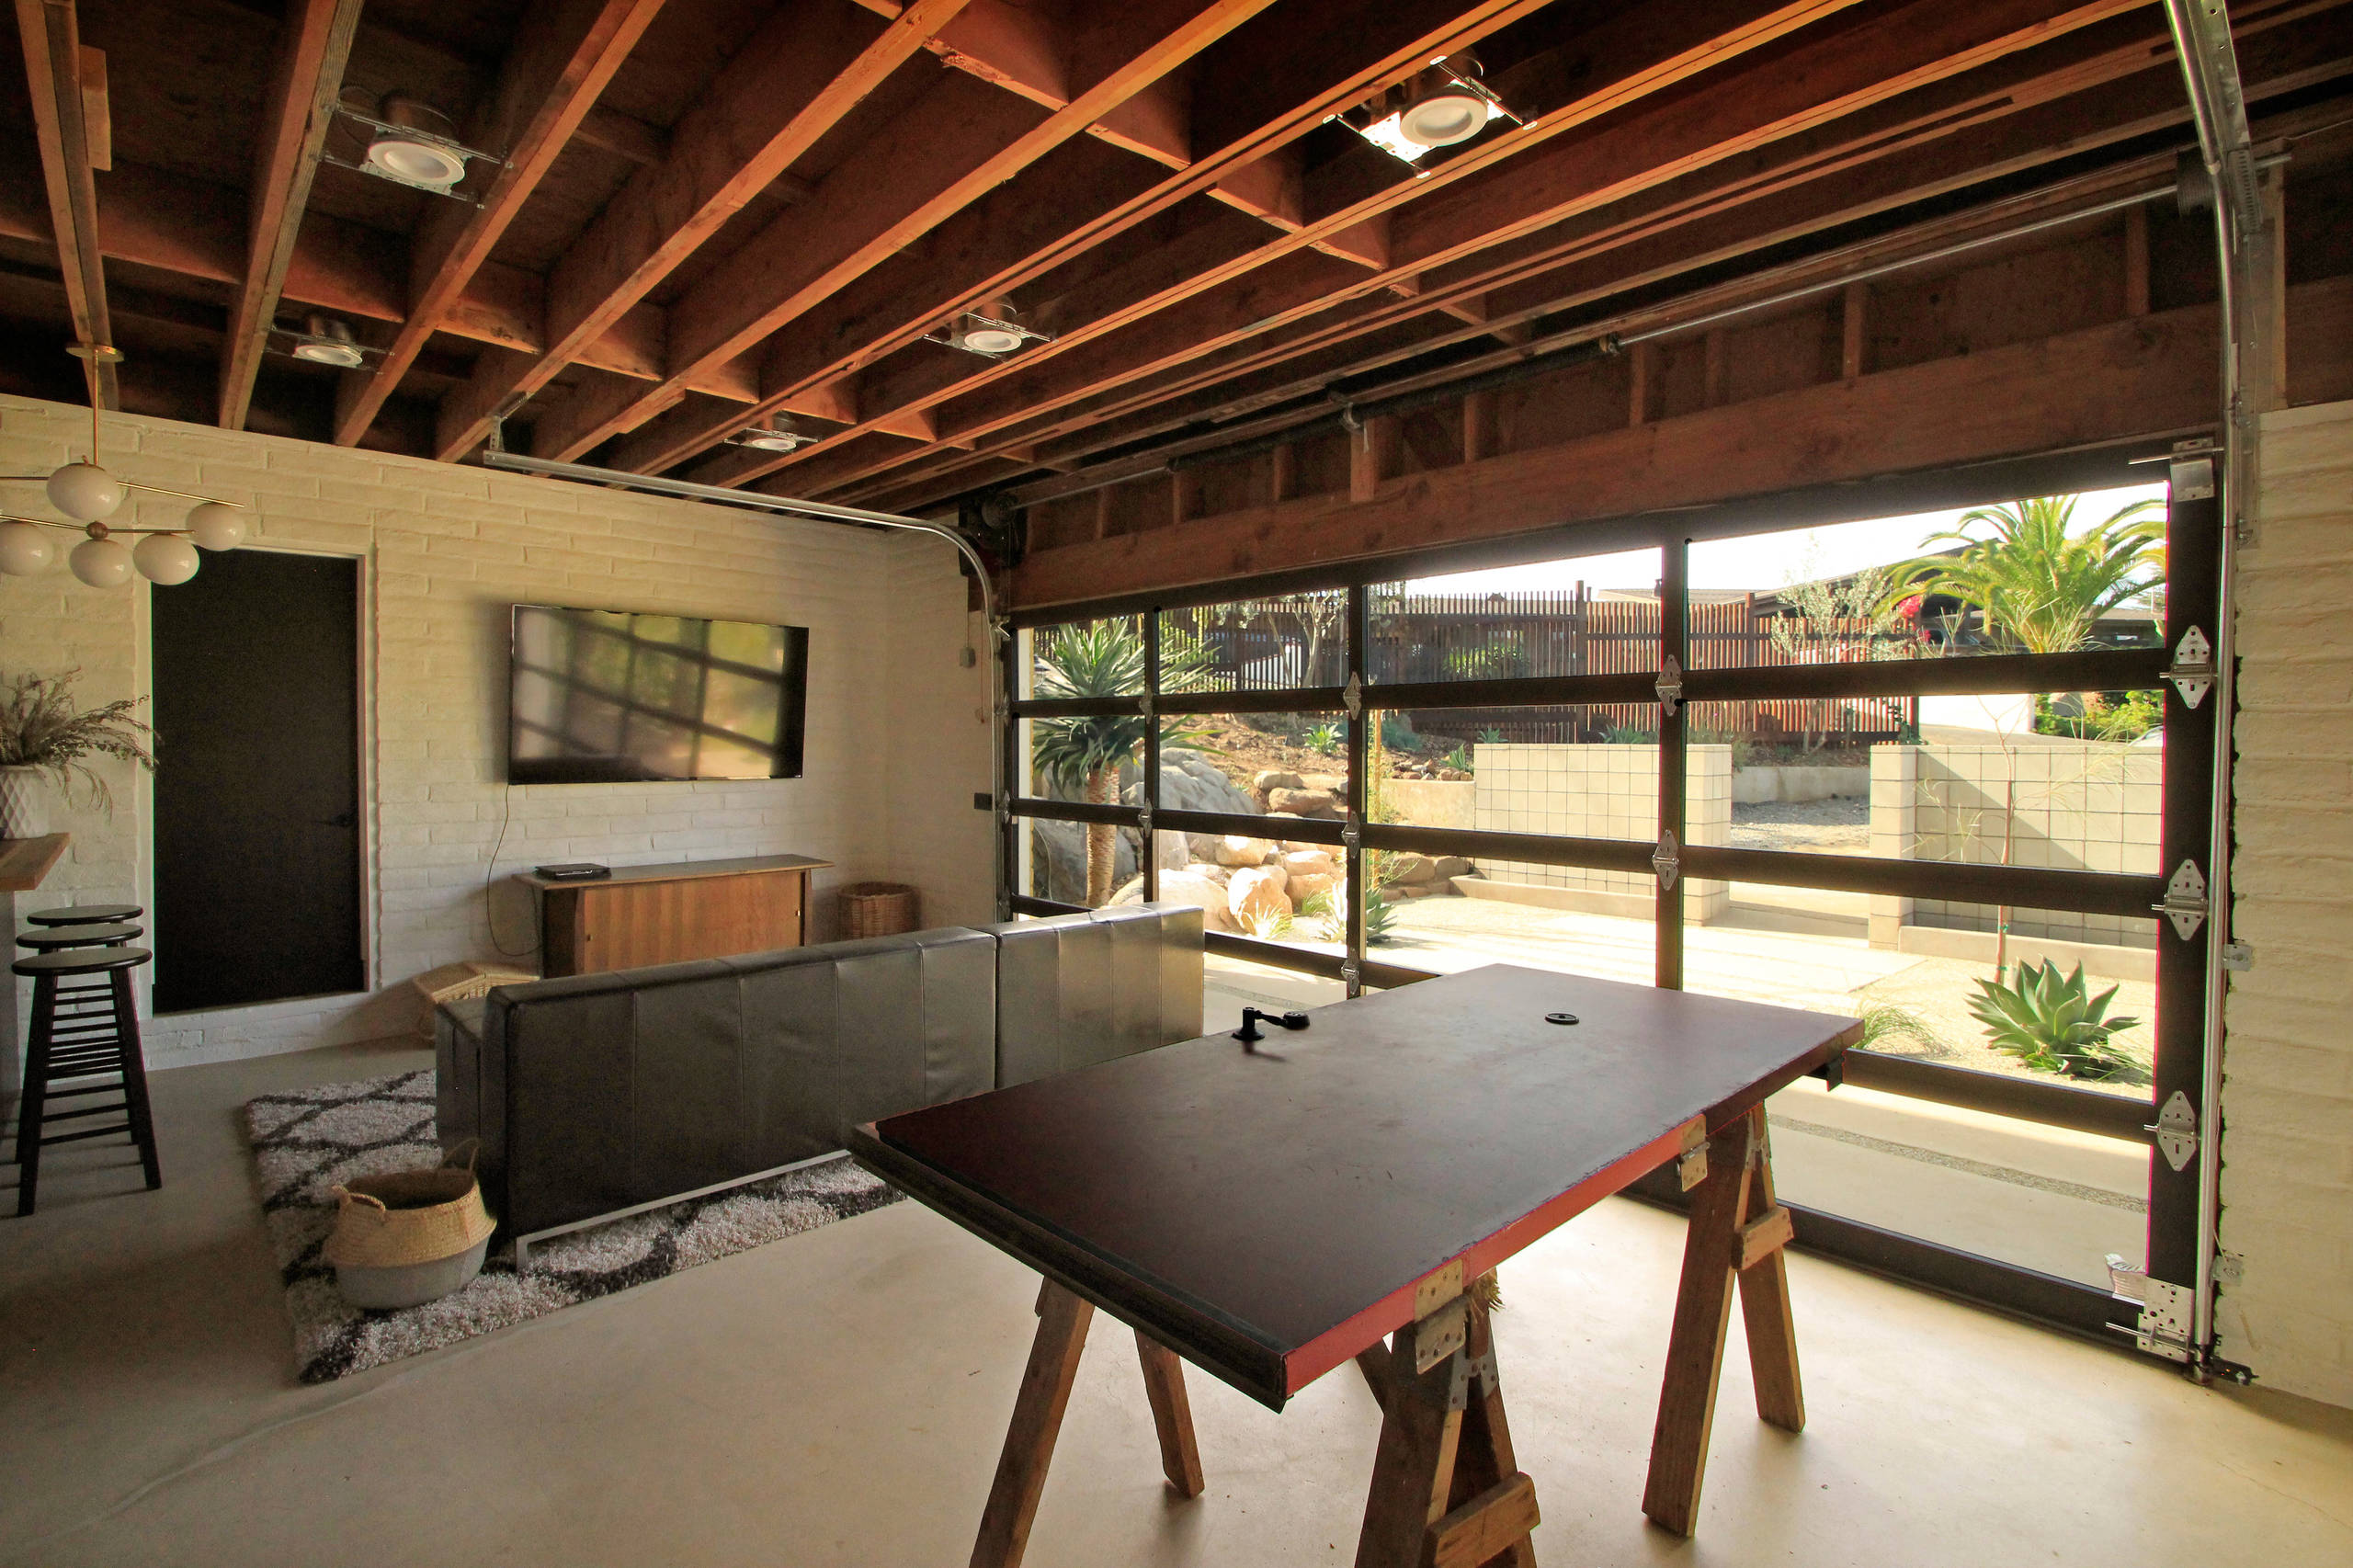 75 Beautiful Eclectic Garage Pictures Ideas January 2021 Houzz